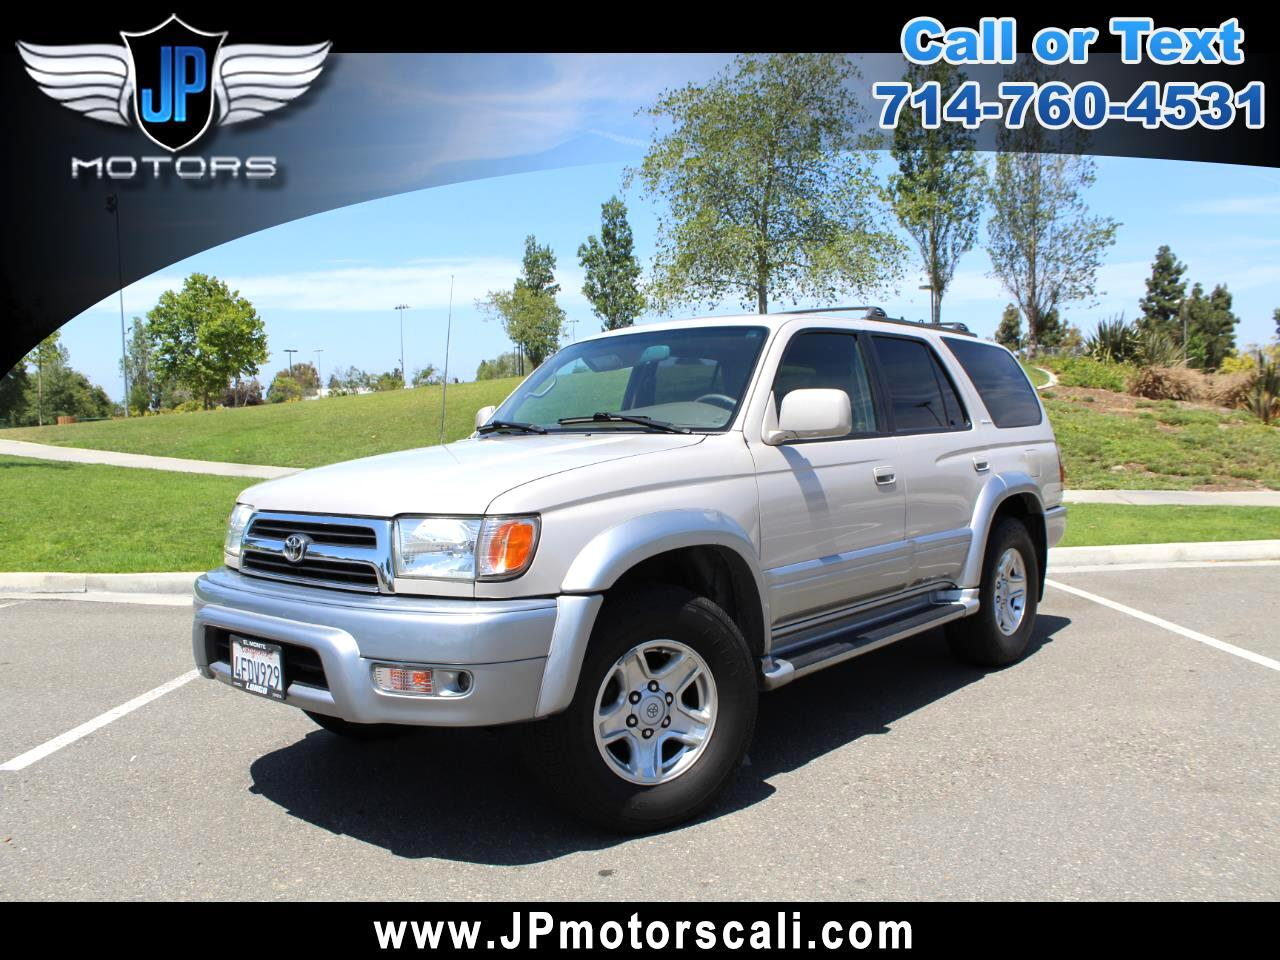 1999 Toyota 4Runner 4dr Limited 3.4L Auto